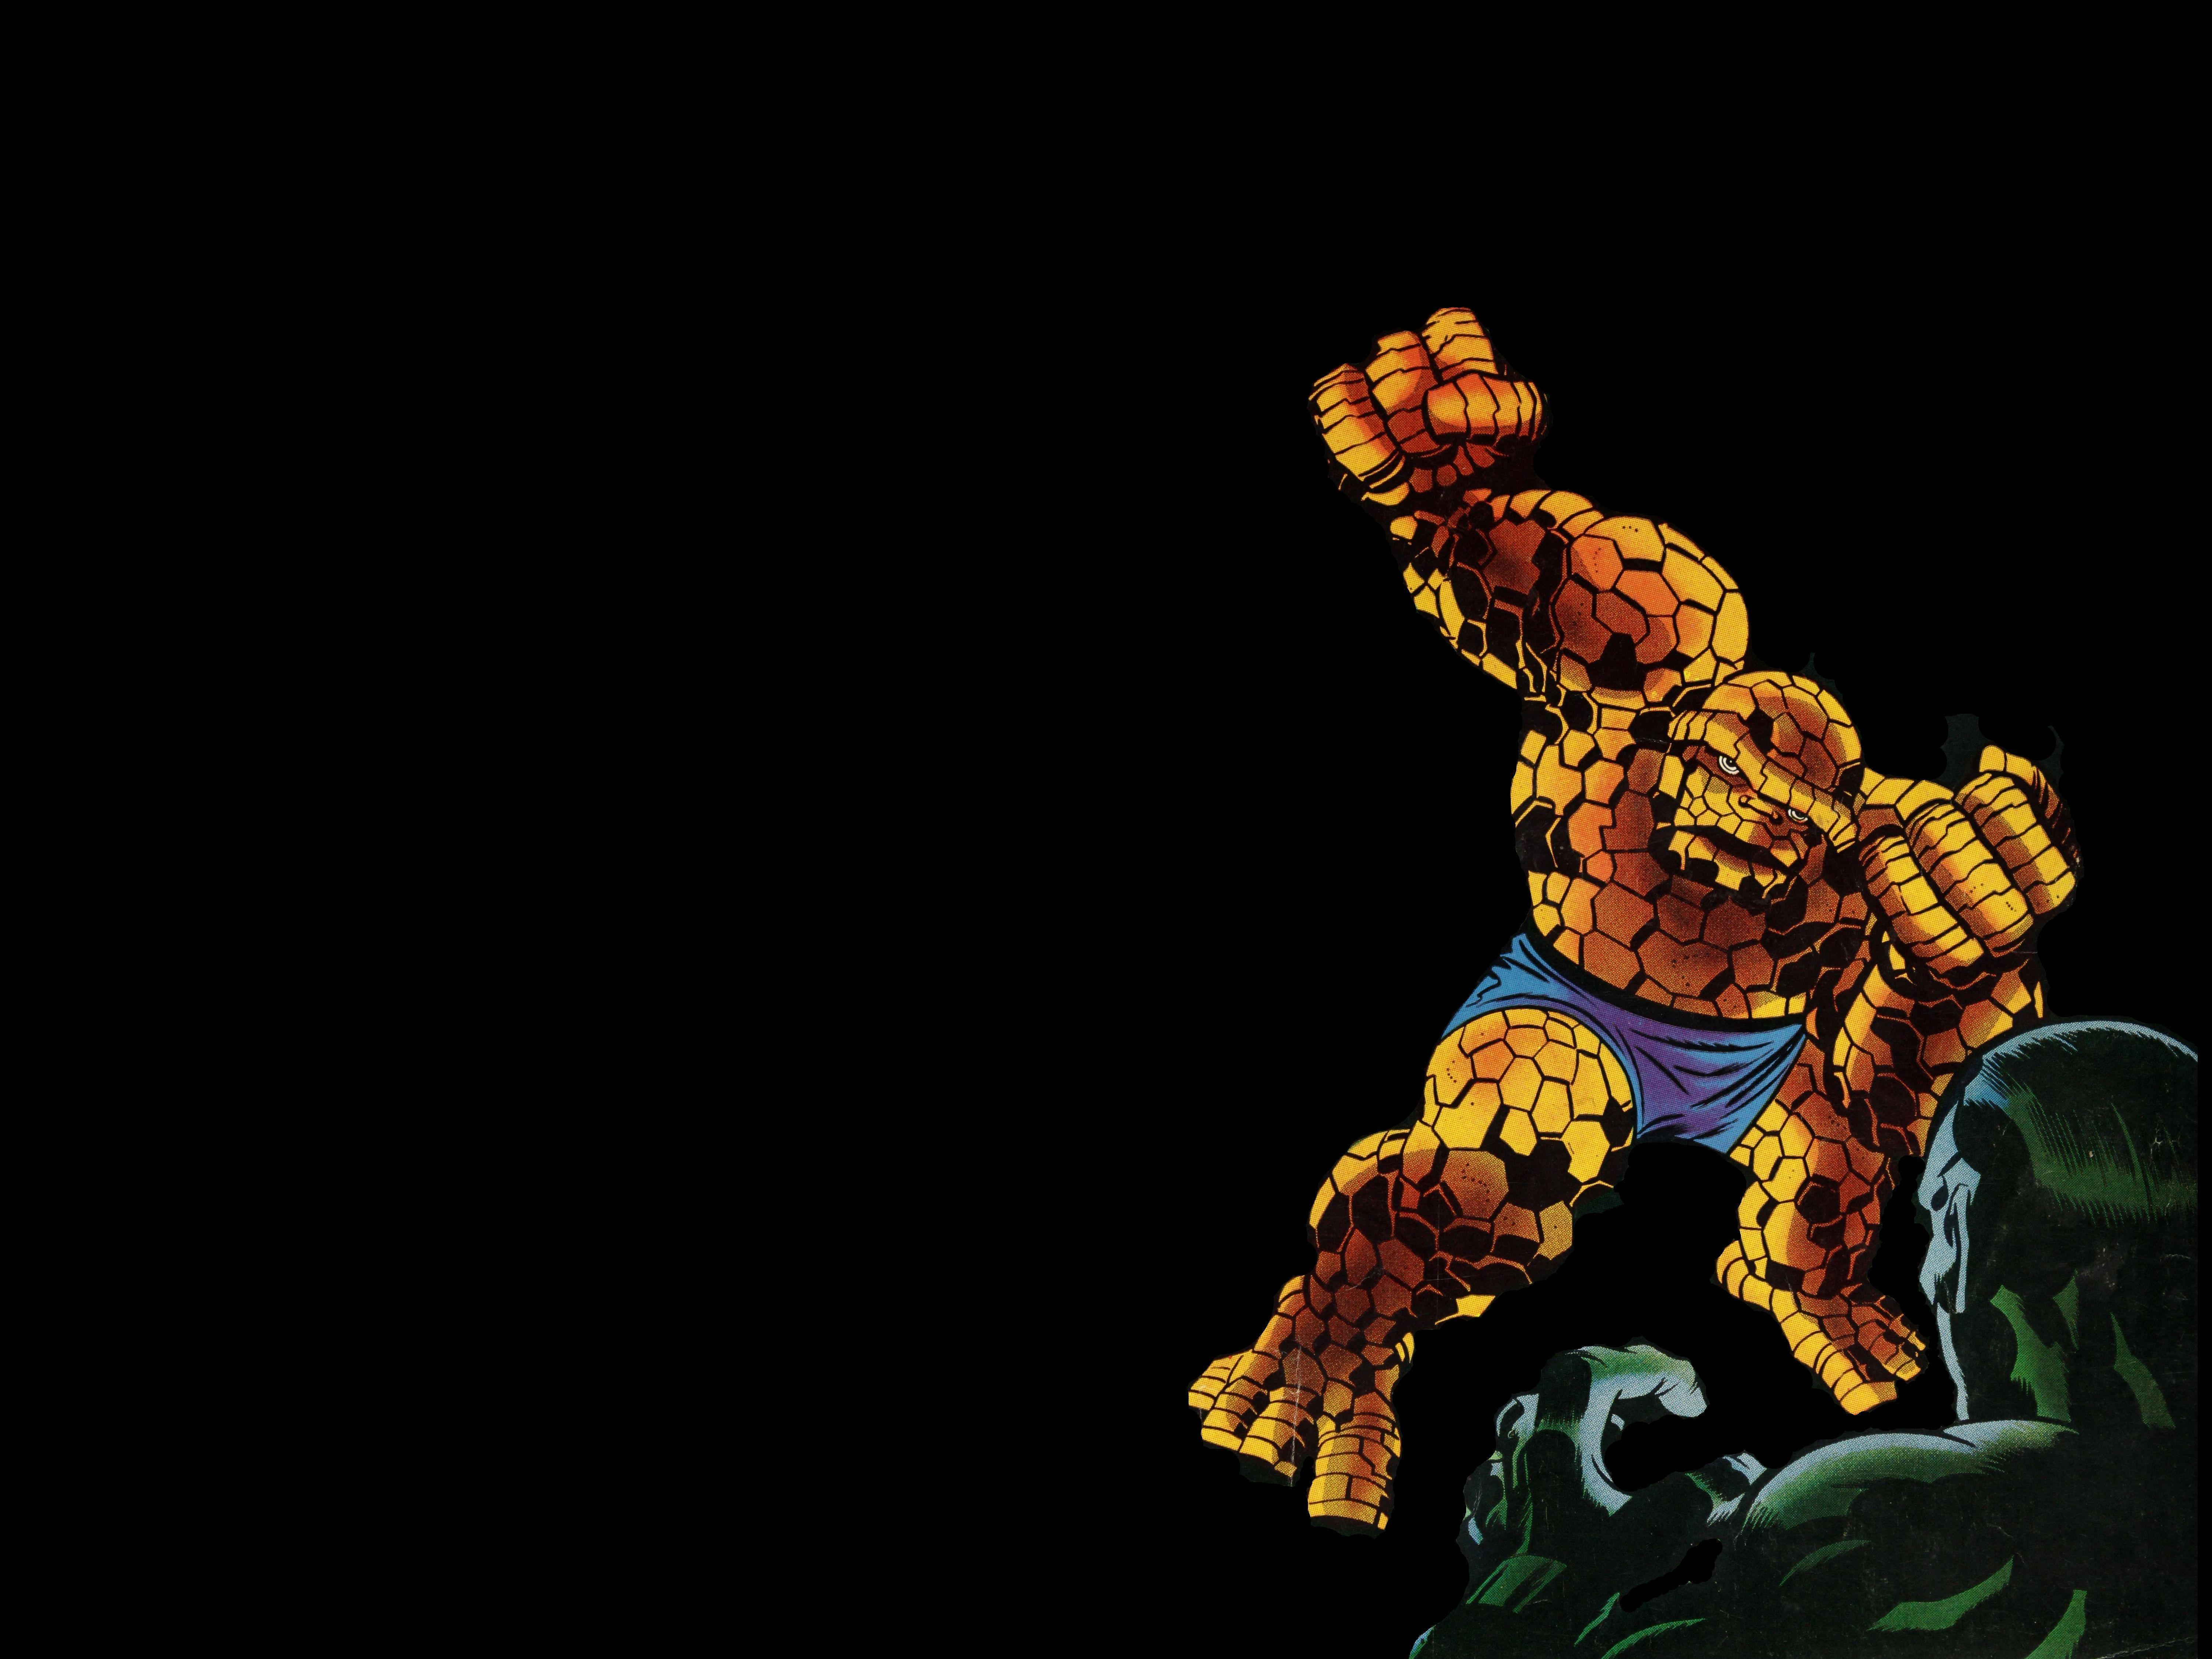 Fantastic Four Computer Wallpapers, Desktop Backgrounds ...